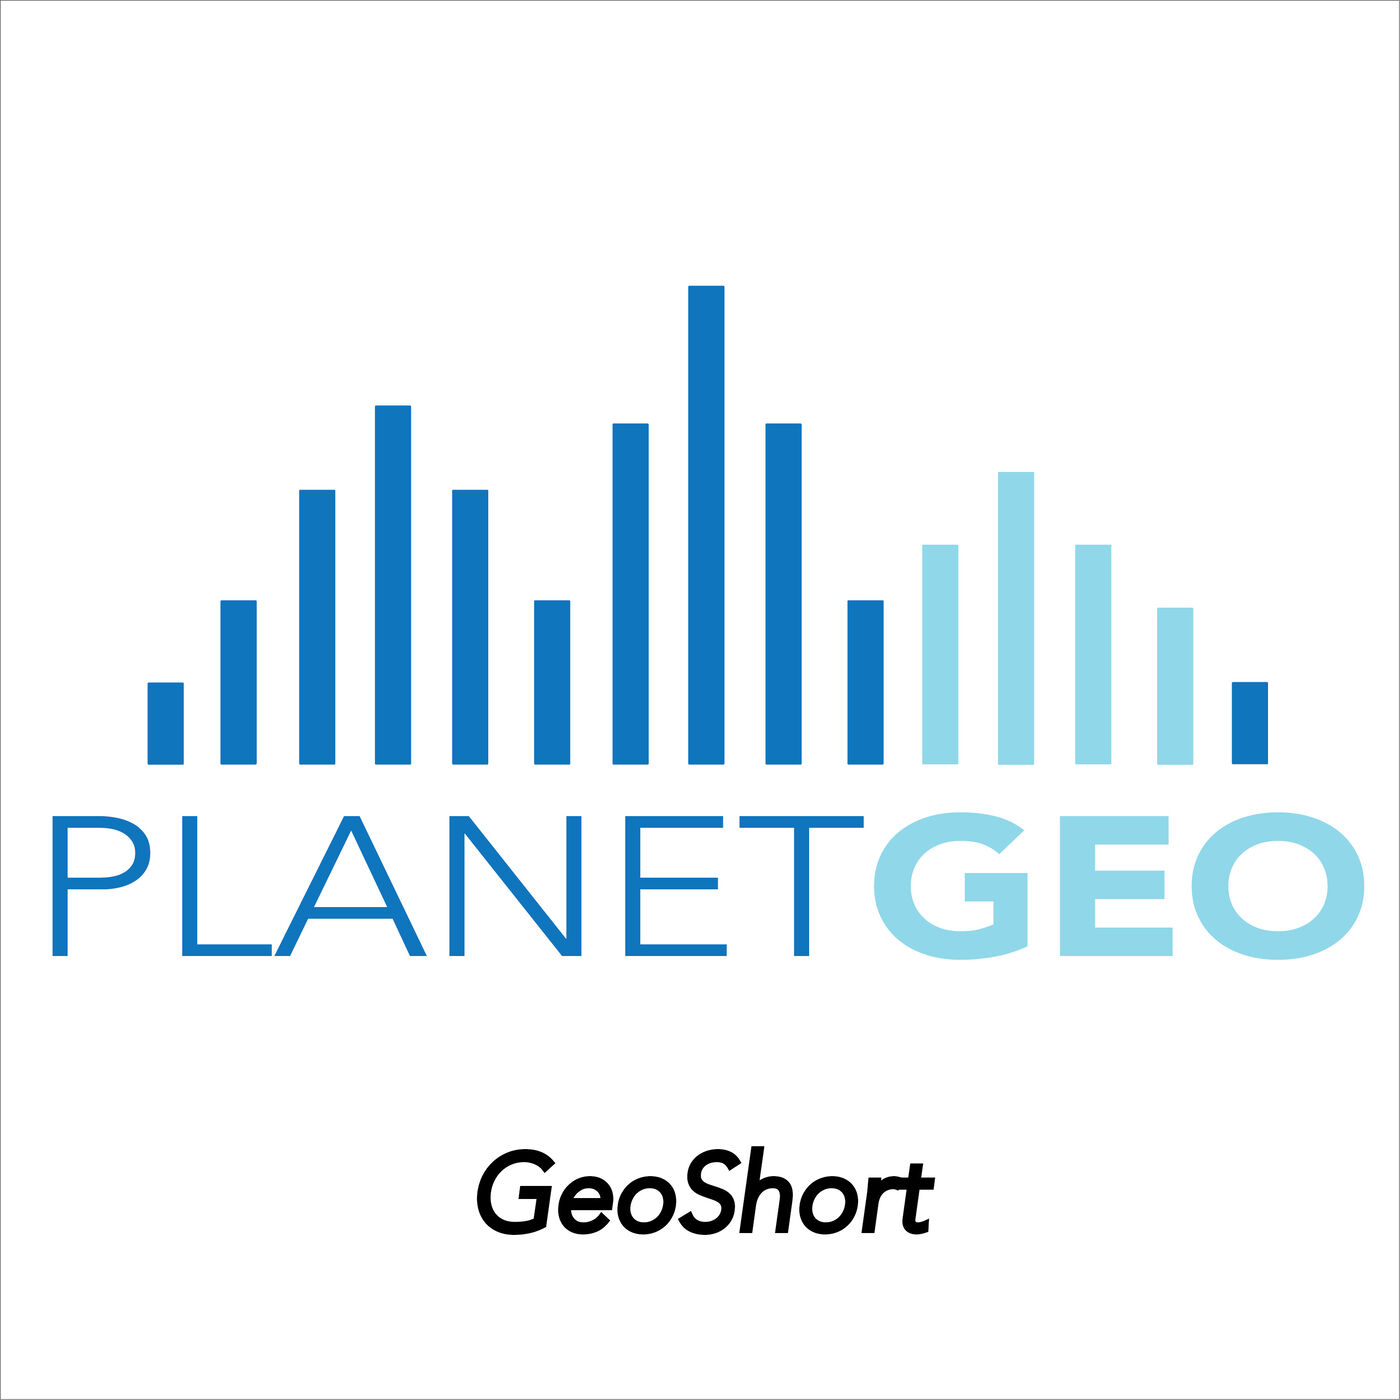 GeoShort: Jupiter, Space Time, And a Preview to Our Interview with Dr. Jackie Faherty